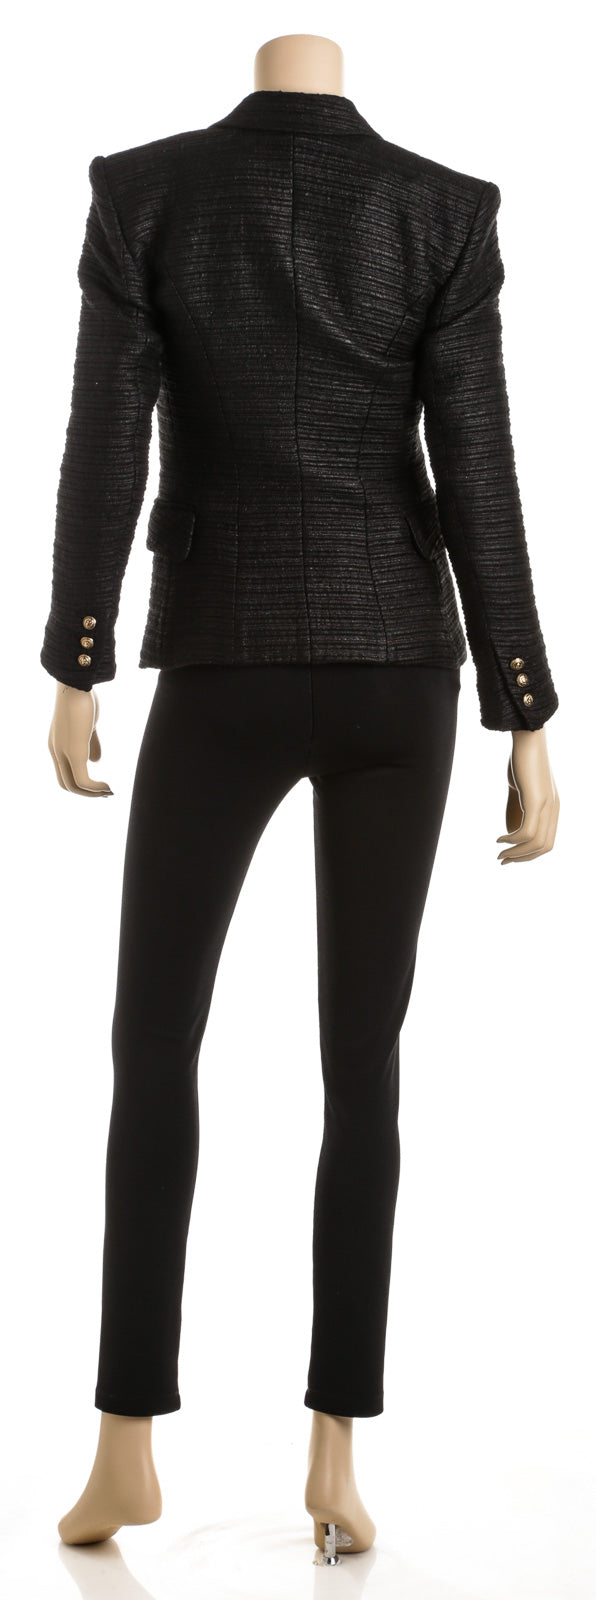 Balmain Black Wool Blend Metallic Tweed Blazer (Size 38)